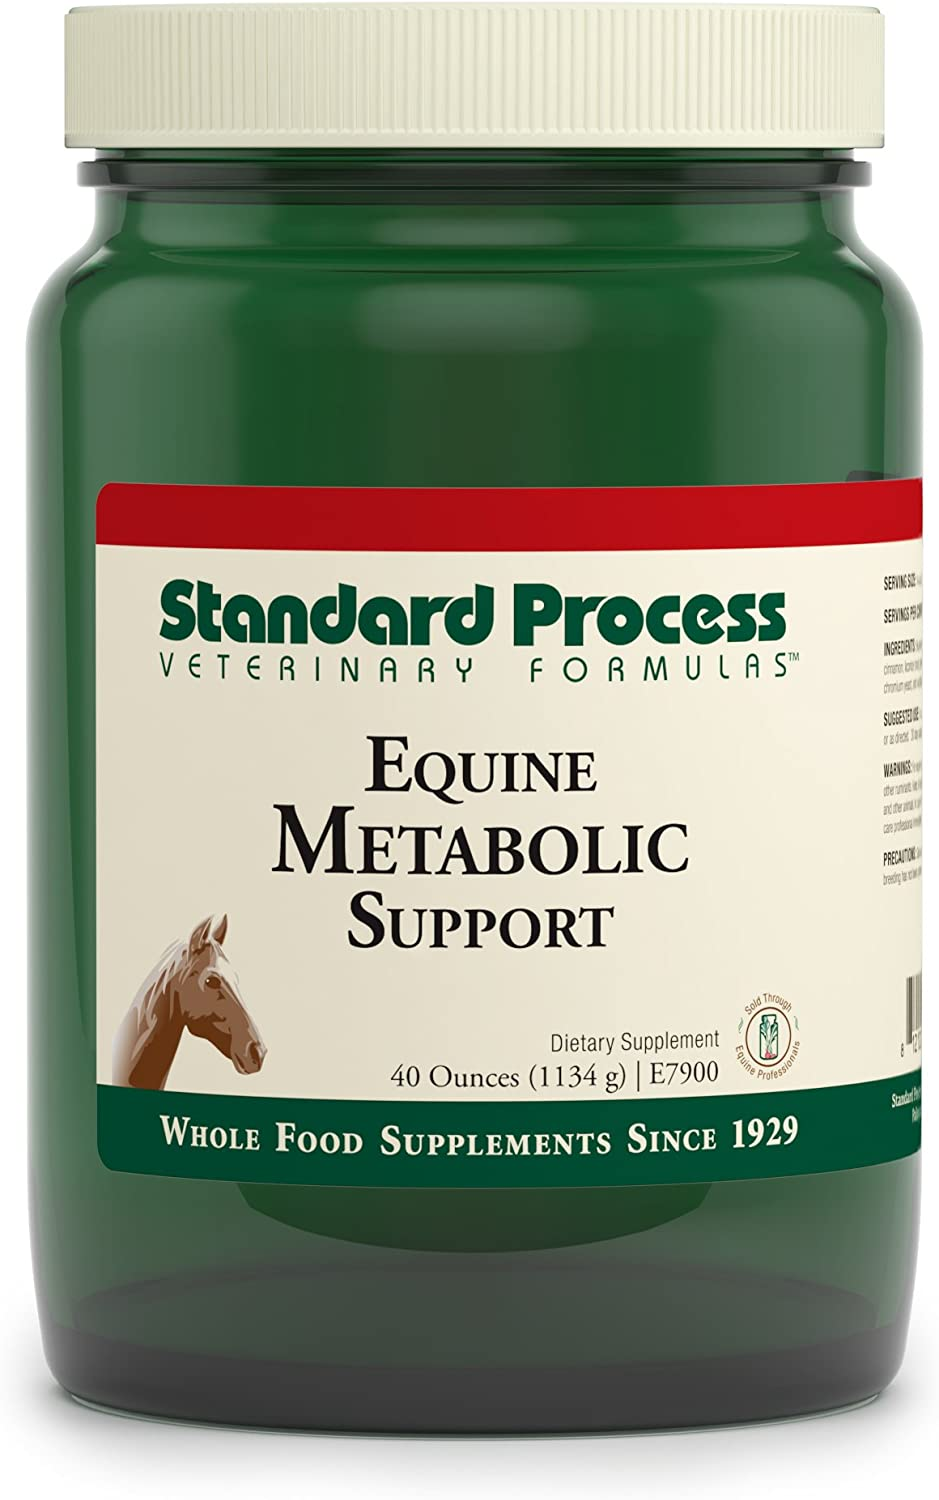 Standard Process Equine Metabolic Support - Whole Food Horse Supplies for Glucose Metabolism and Antioxidant Activity with Green Tea Extract, Cayenne Pepper, Licorice Root - 40oz